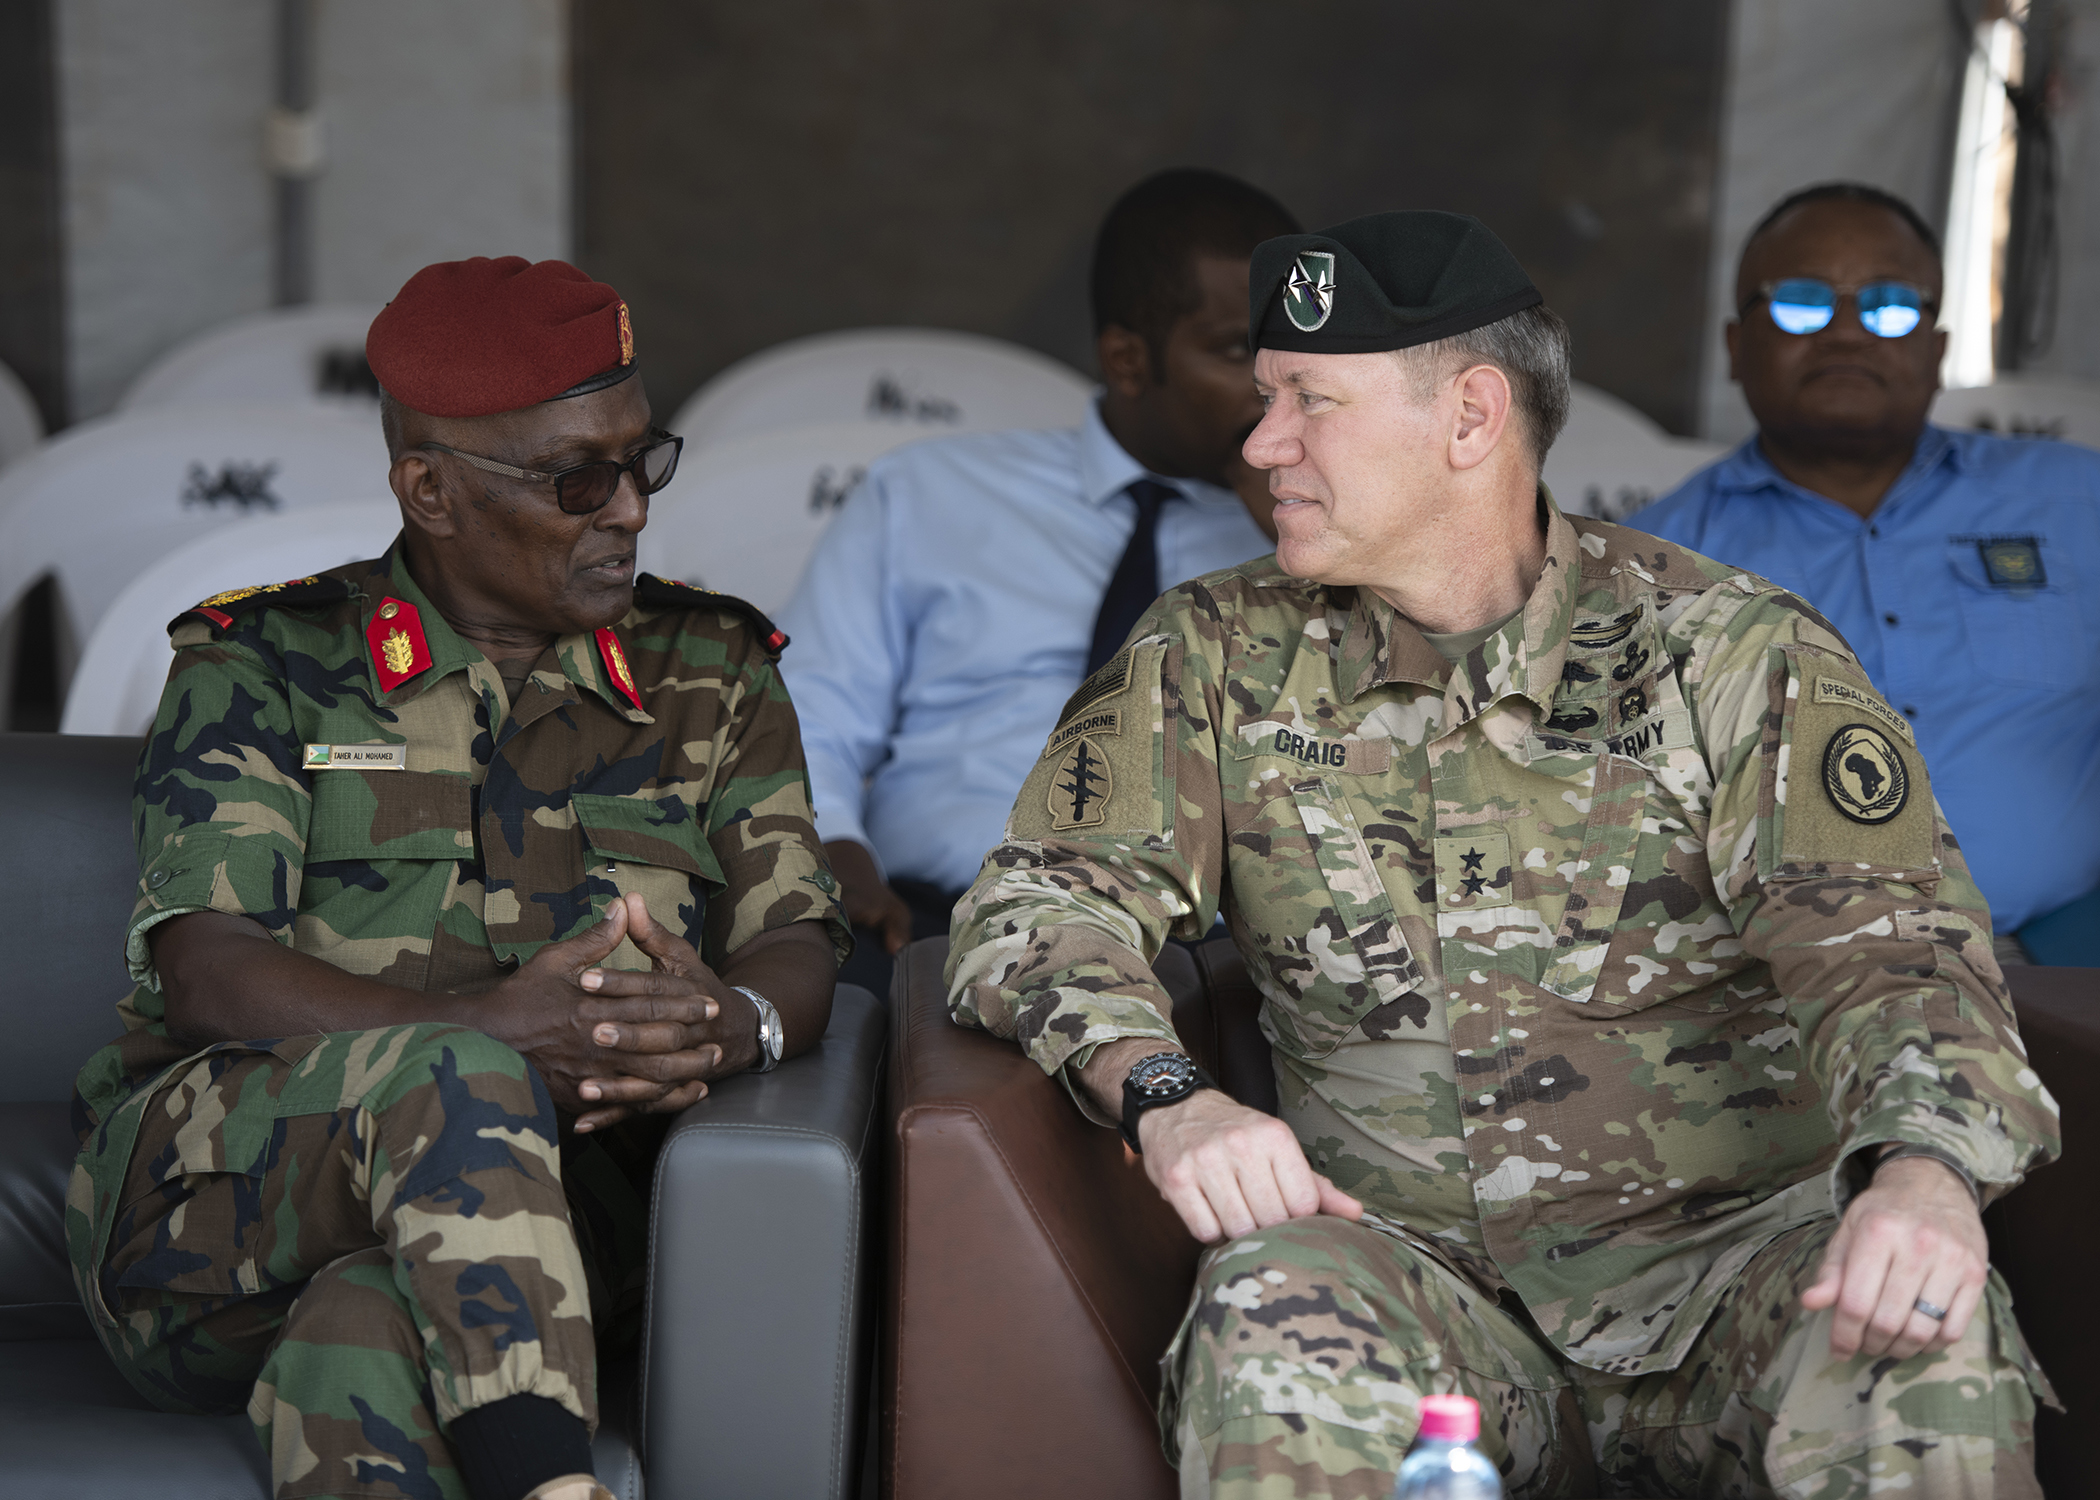 U.S. Army Maj. Gen. James D. Craig, commanding general, Combined Joint Task Force-Horn of Africa (CJTF-HOA), talks to a Djiboutian military officials during the Ali Oune Medial Clinic ribbon cutting ceremony in Ali Oune, Djibouti, Jan. 31, 2019. The clinic, which U.S. Navy Seabees from Naval Mobile Construction Battalion 1, assigned to CJTF-HOA, have been working to complete for five months, is intended to enhance the Ministry of Health for Djibouti's ability to provide basic medical, birth and after care to the Ali Oune village and its more than 1,000 residents and rural neighbors. (U.S. Air Force photo by Tech. Sgt. Shawn Nickel)